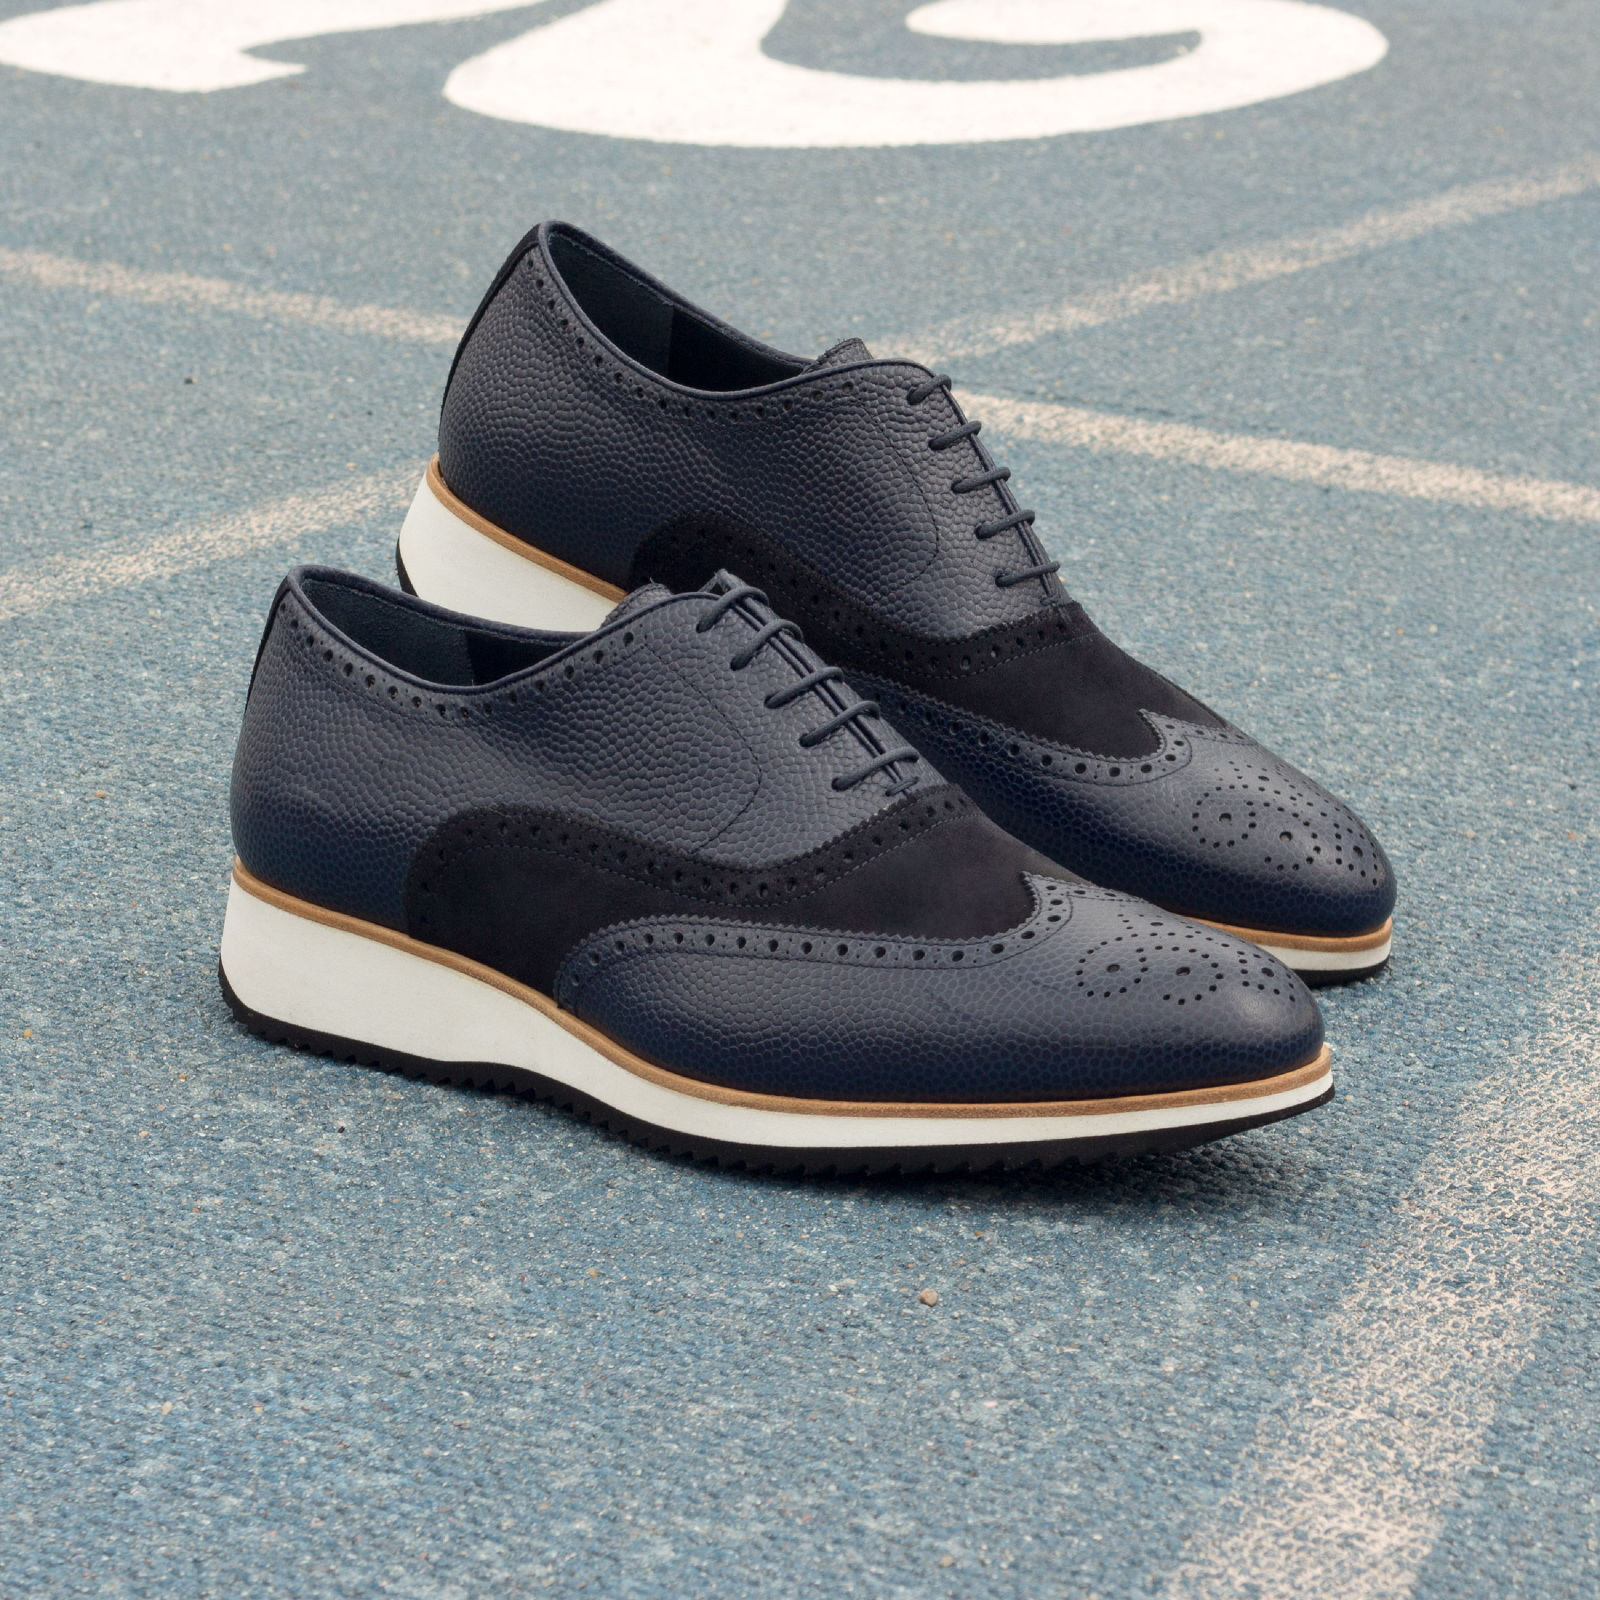 Full brogue navy lux suede + navy pebble grain : 240€